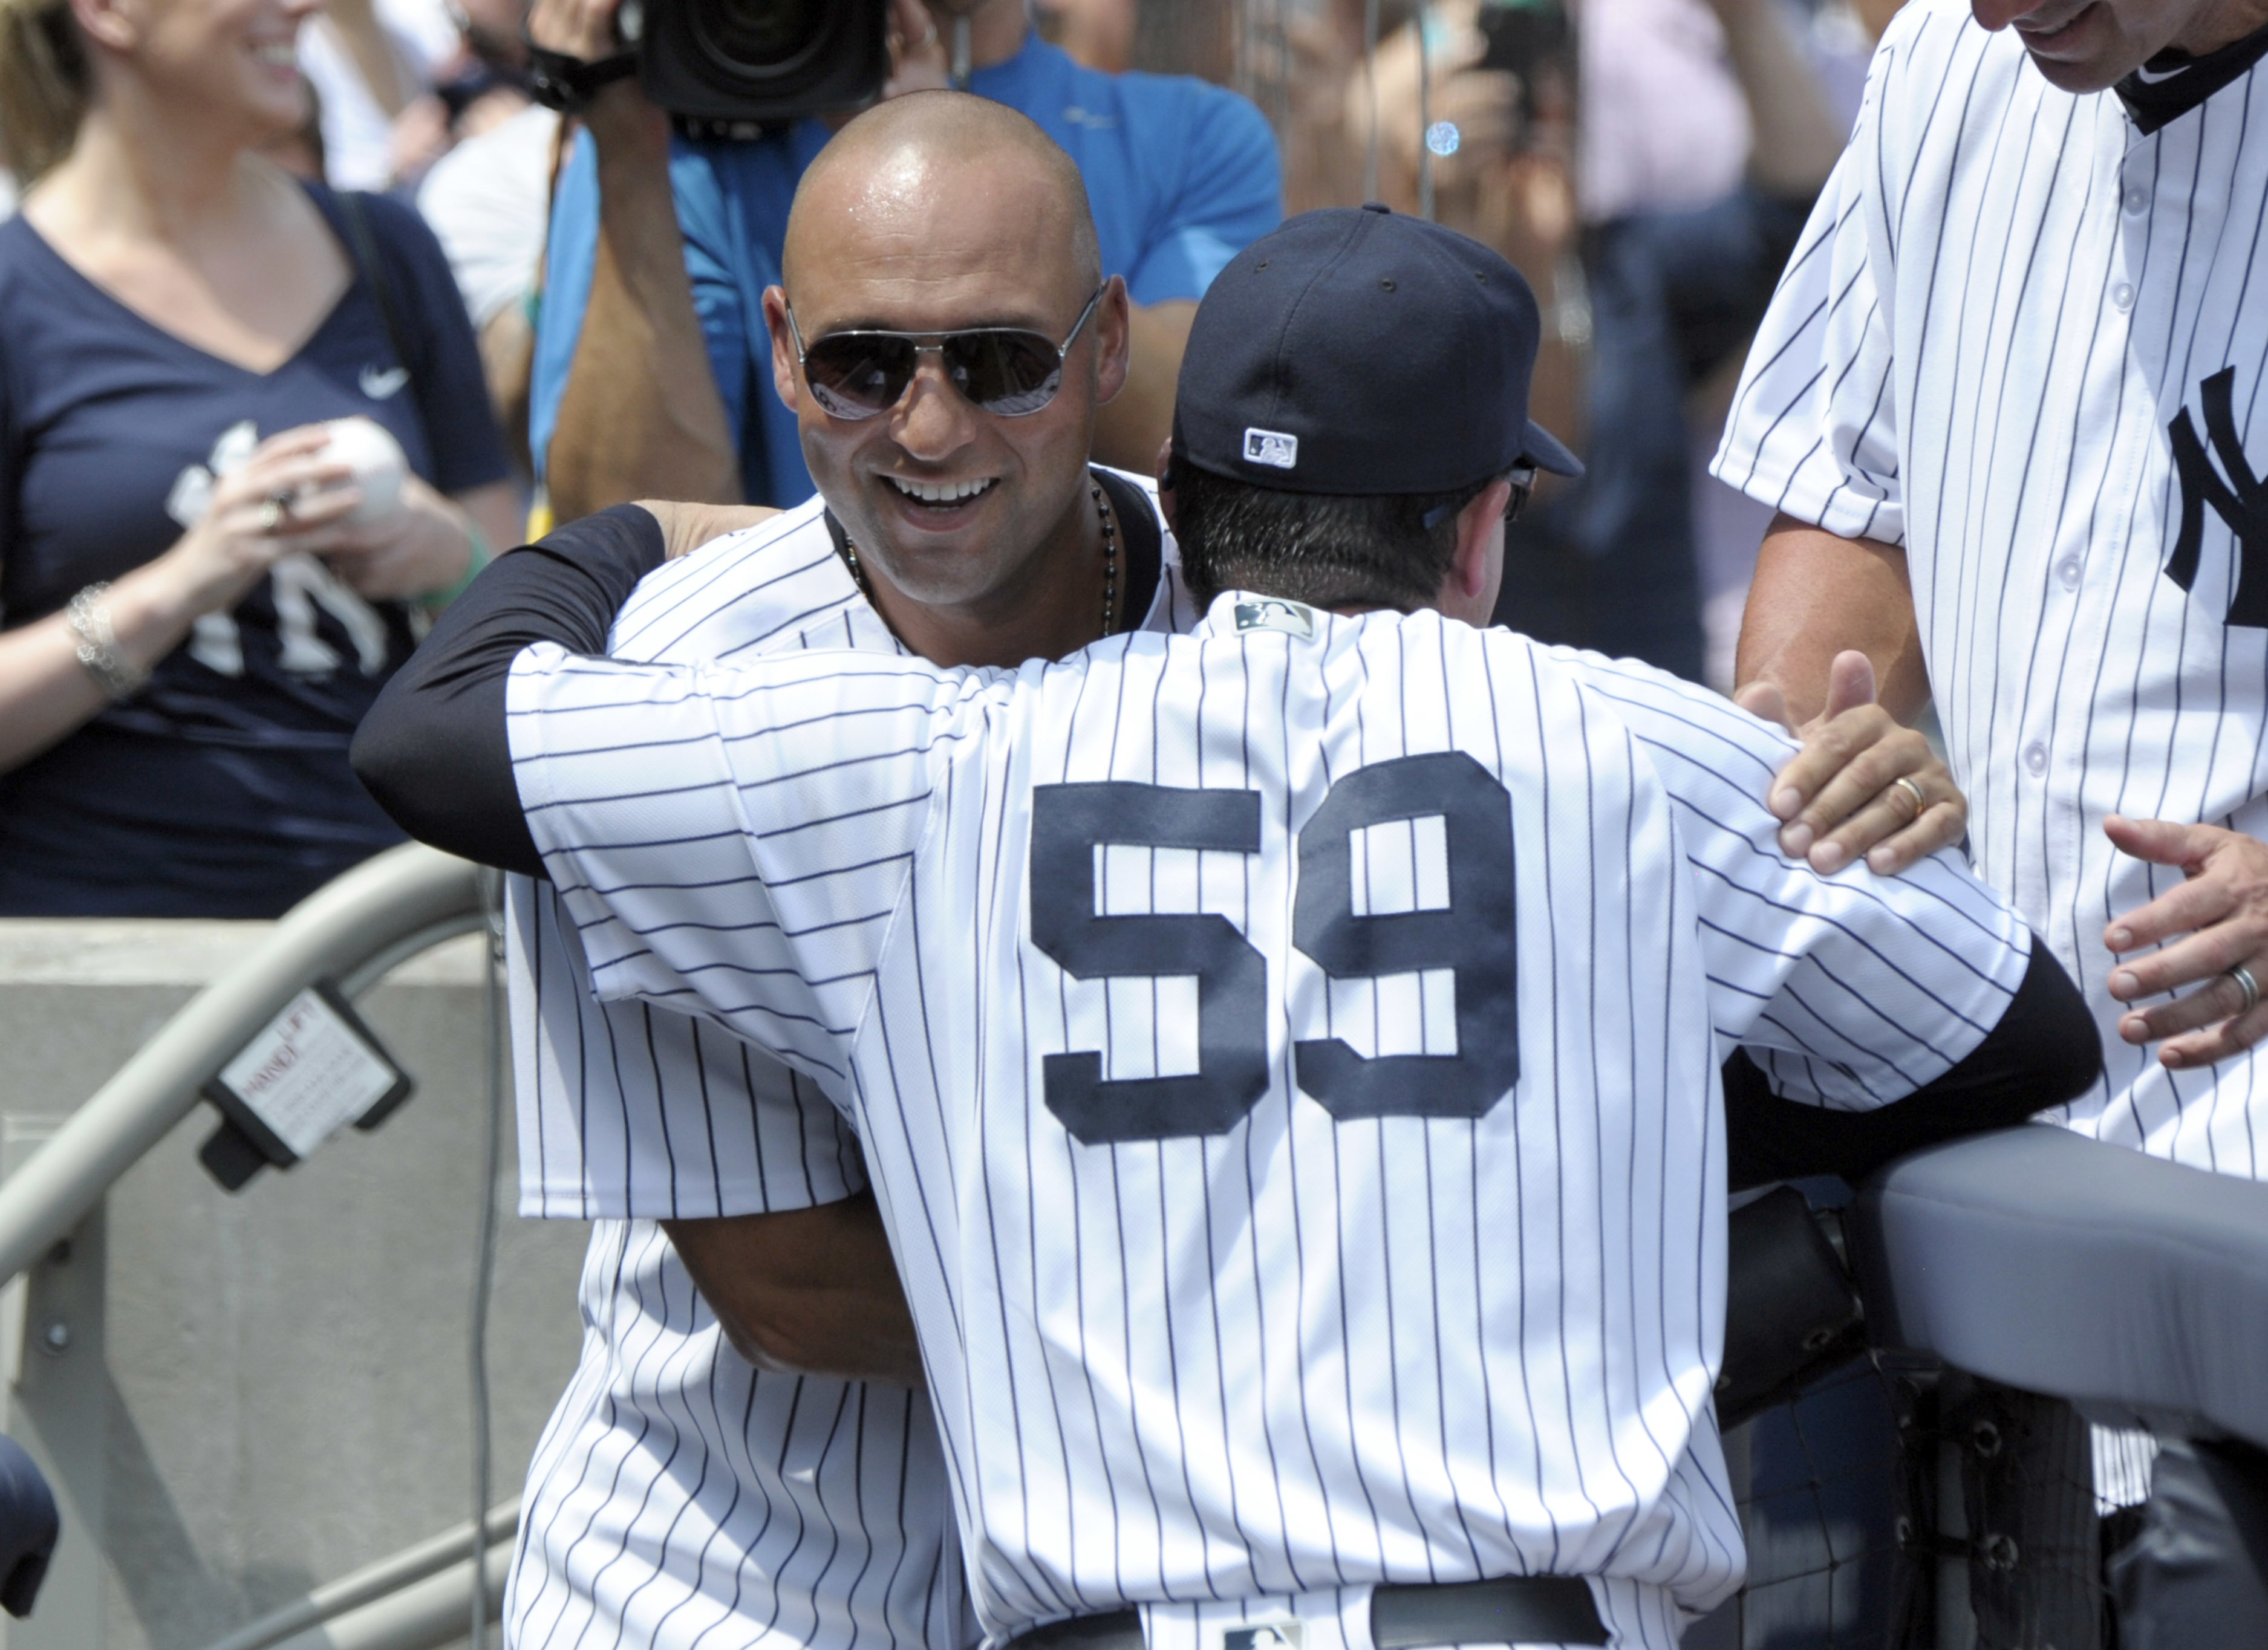 Former New York Yankees shortstop Derek Jeter hugs bench coach Rob Thompson before a baseball game against the Tampa Bay Rays Saturday, Aug.13, 2016, at Yankee Stadium in New York. The 1996 Yankees team was honored before the game. (AP Photo/Bill Kostroun